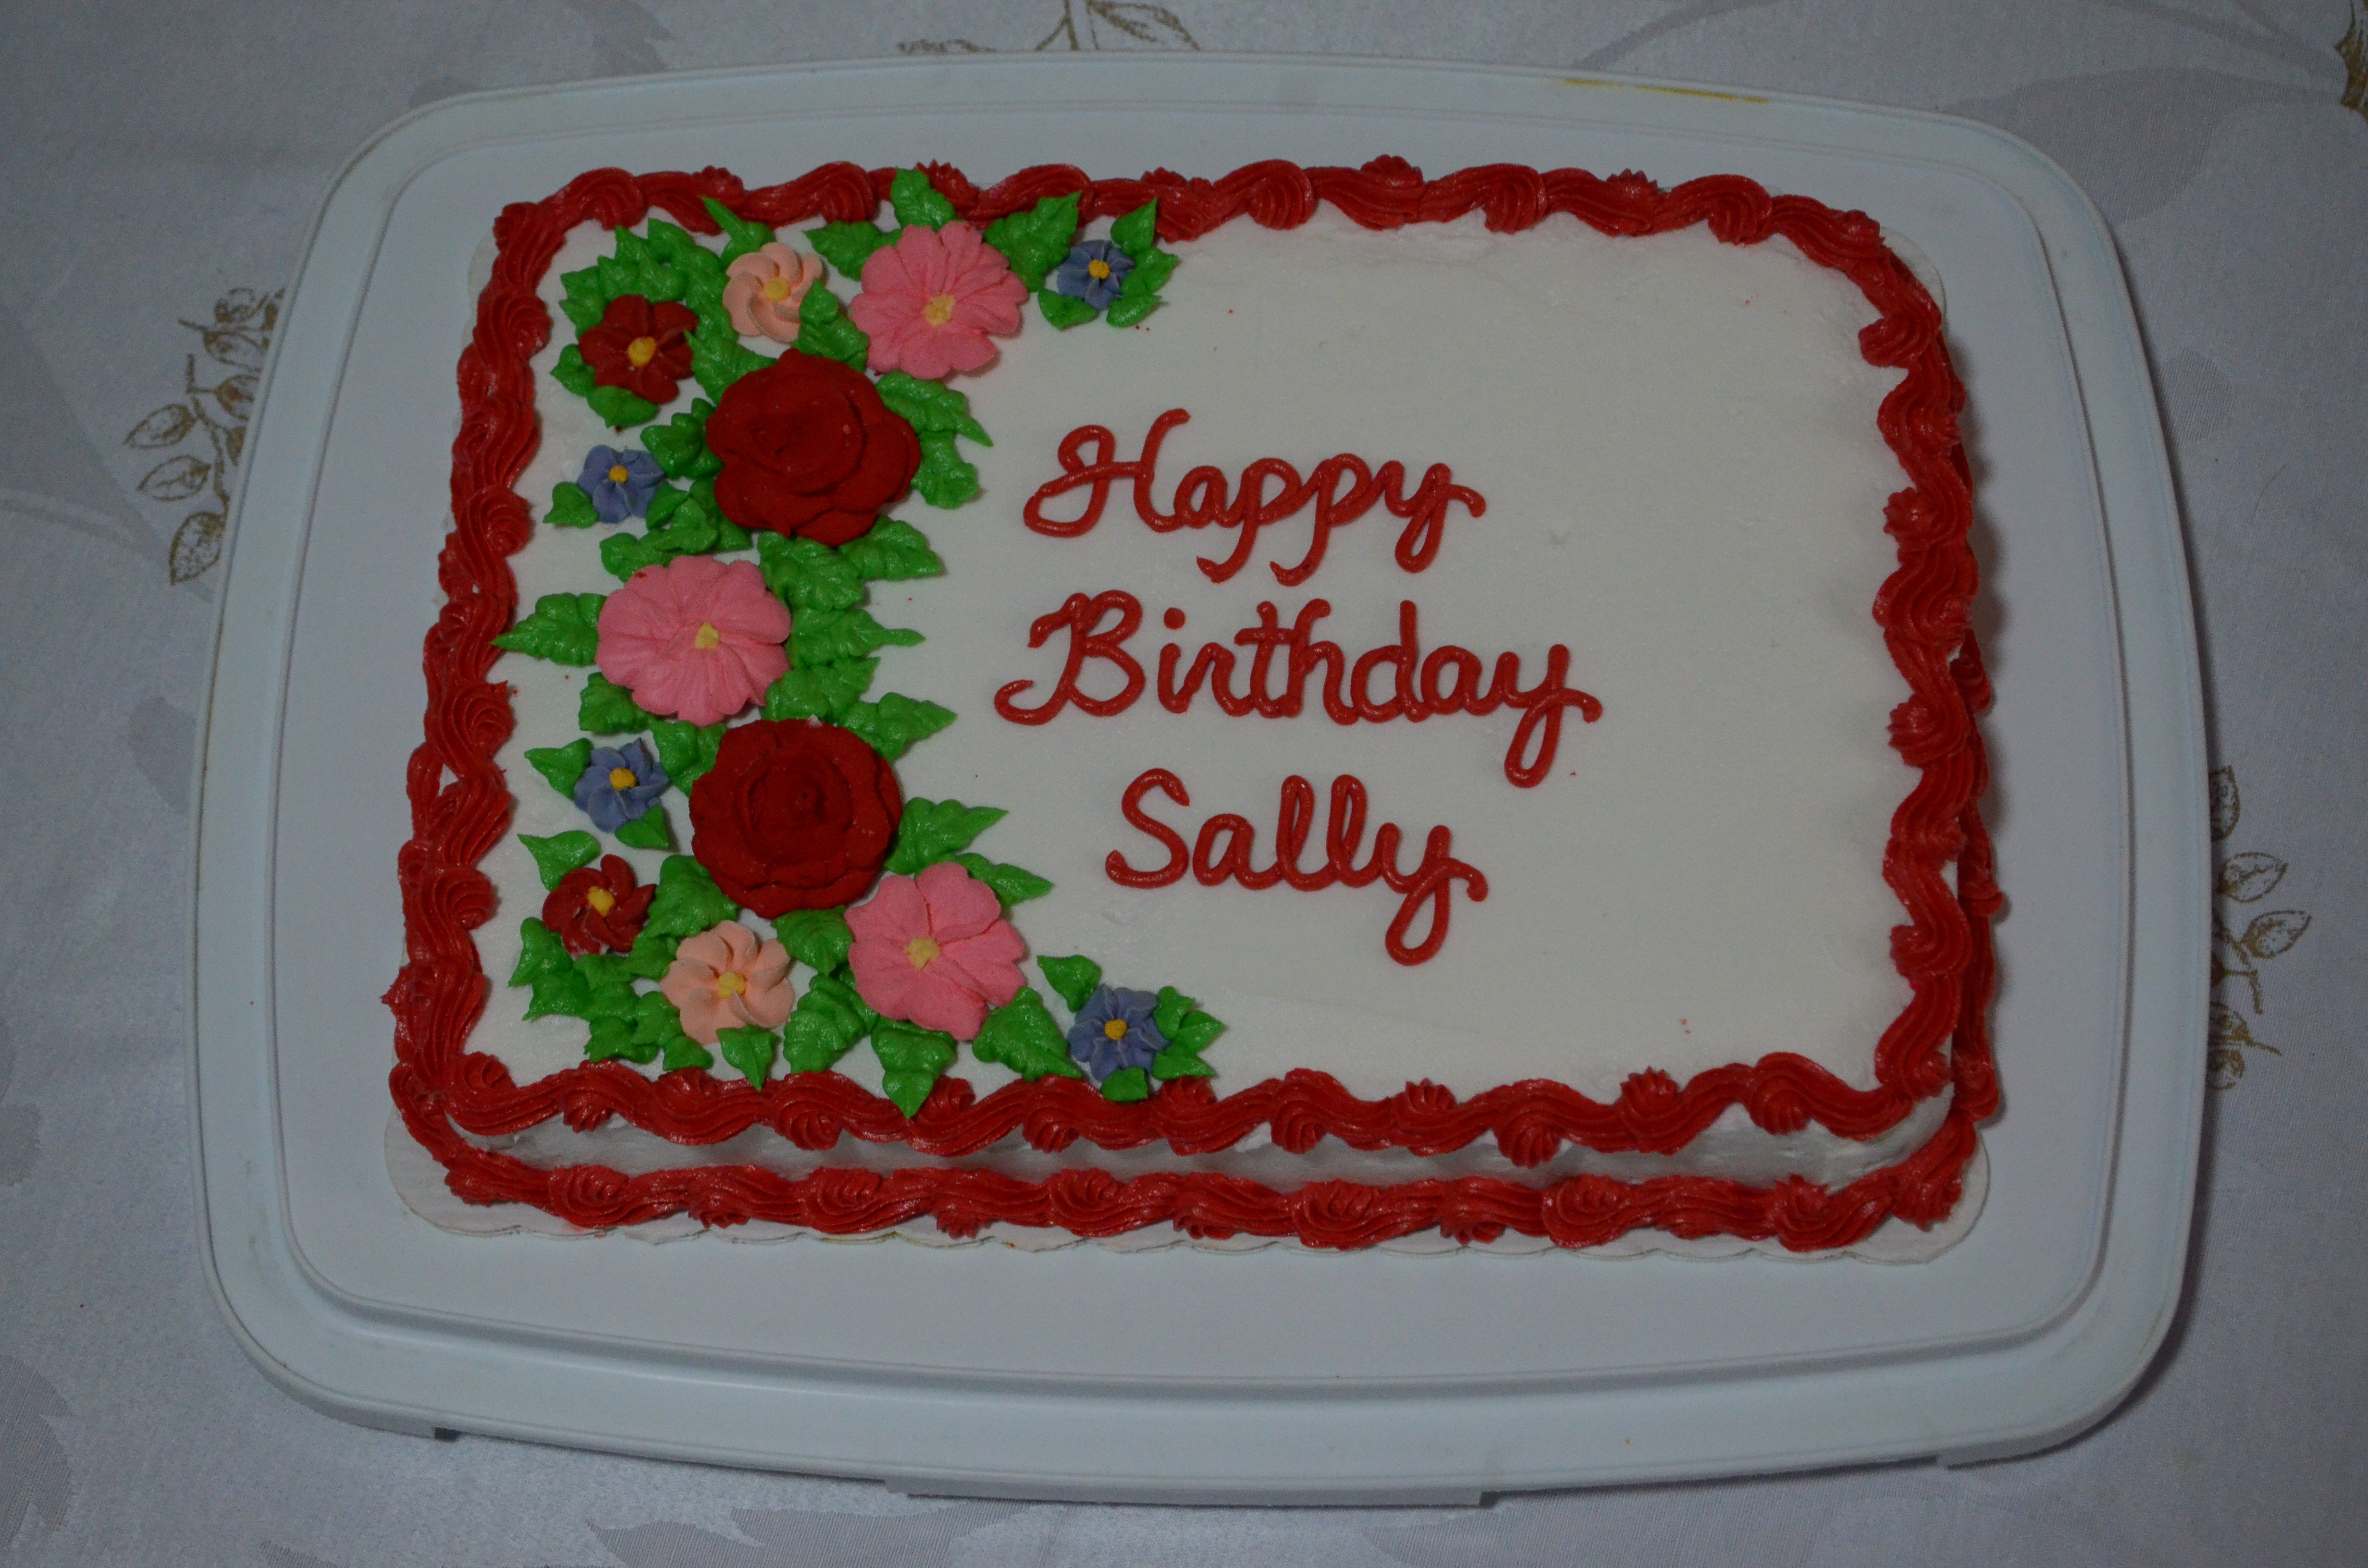 Happy Birthday Sally Cakecentral